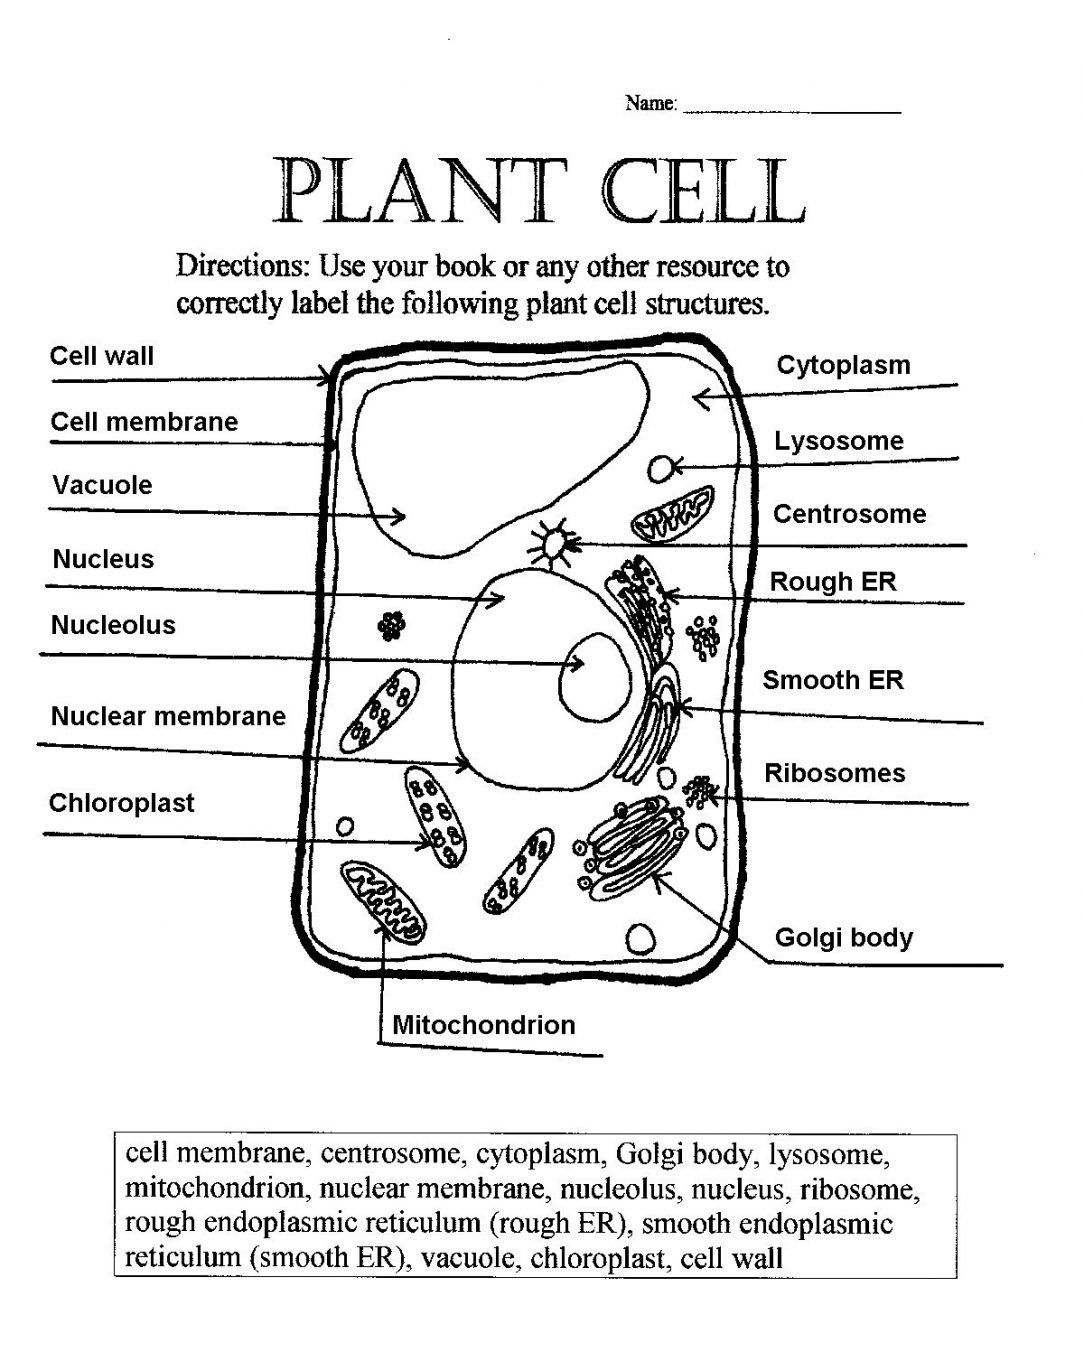 Plant Cell Coloring Key Elegant Wild Animal Coloring Plant